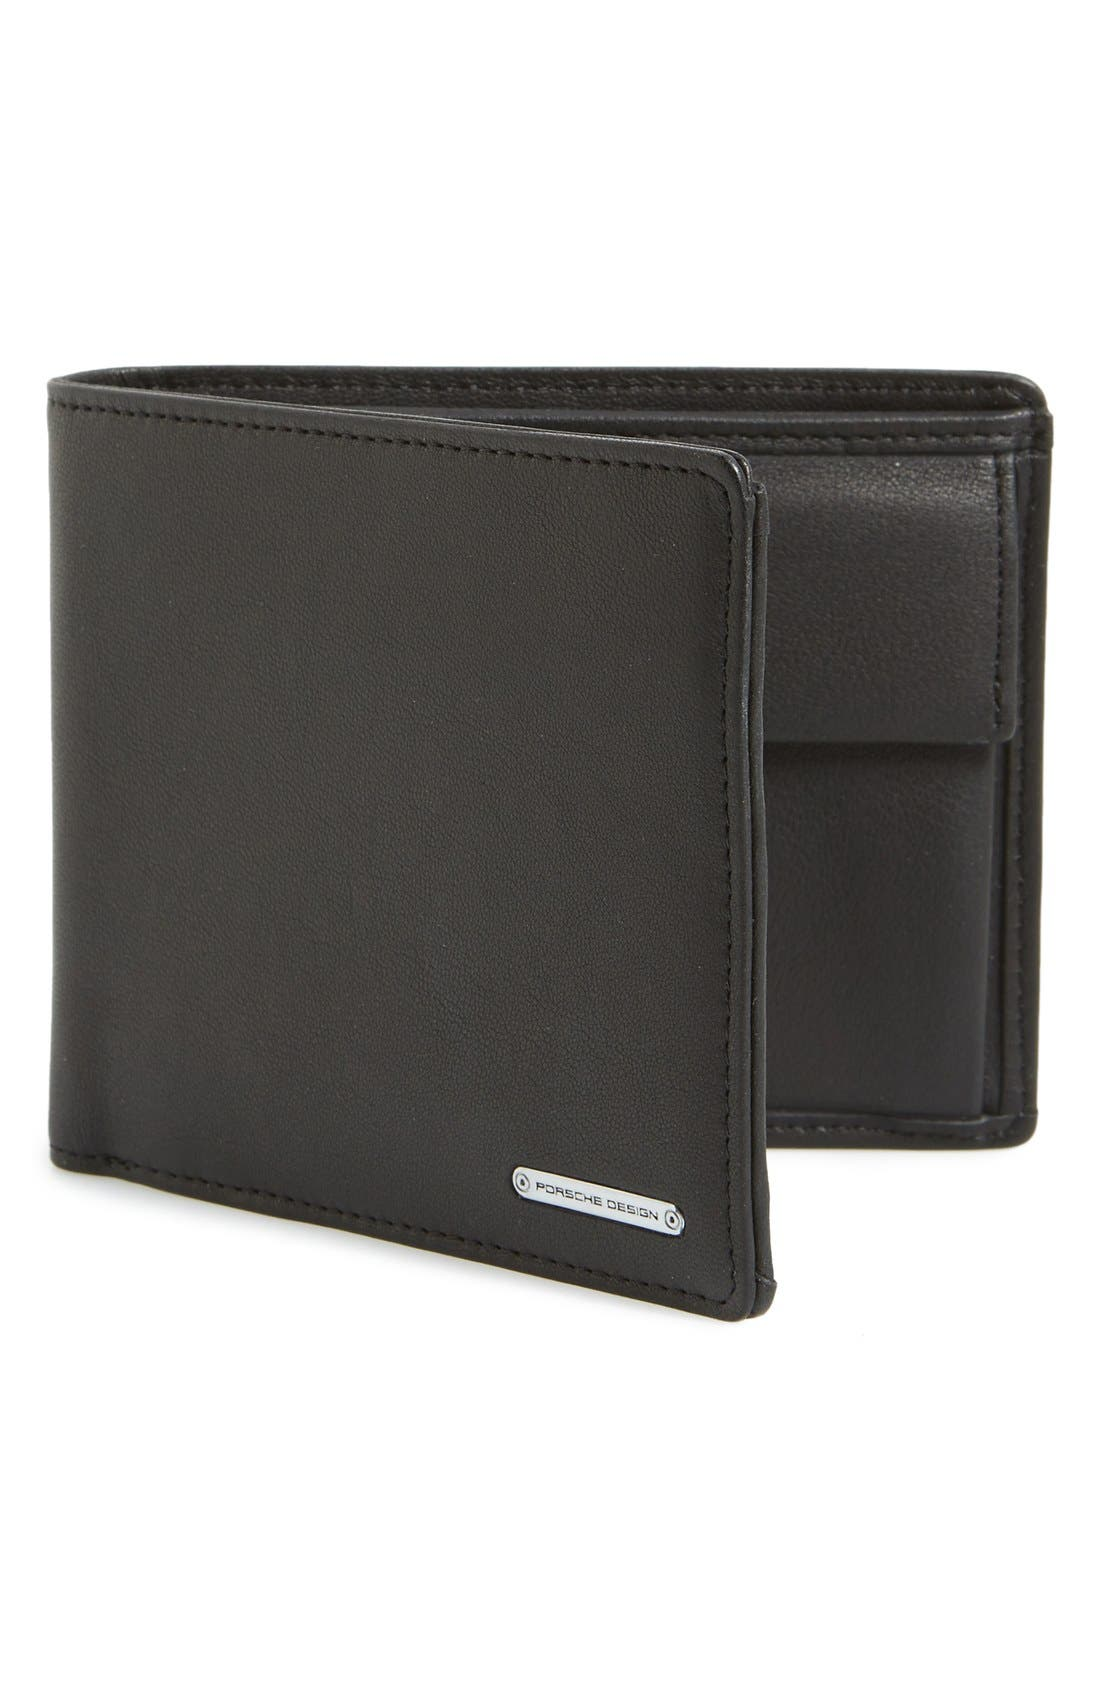 'CL2 2.0' Leather Billfold Wallet,                         Main,                         color, 001